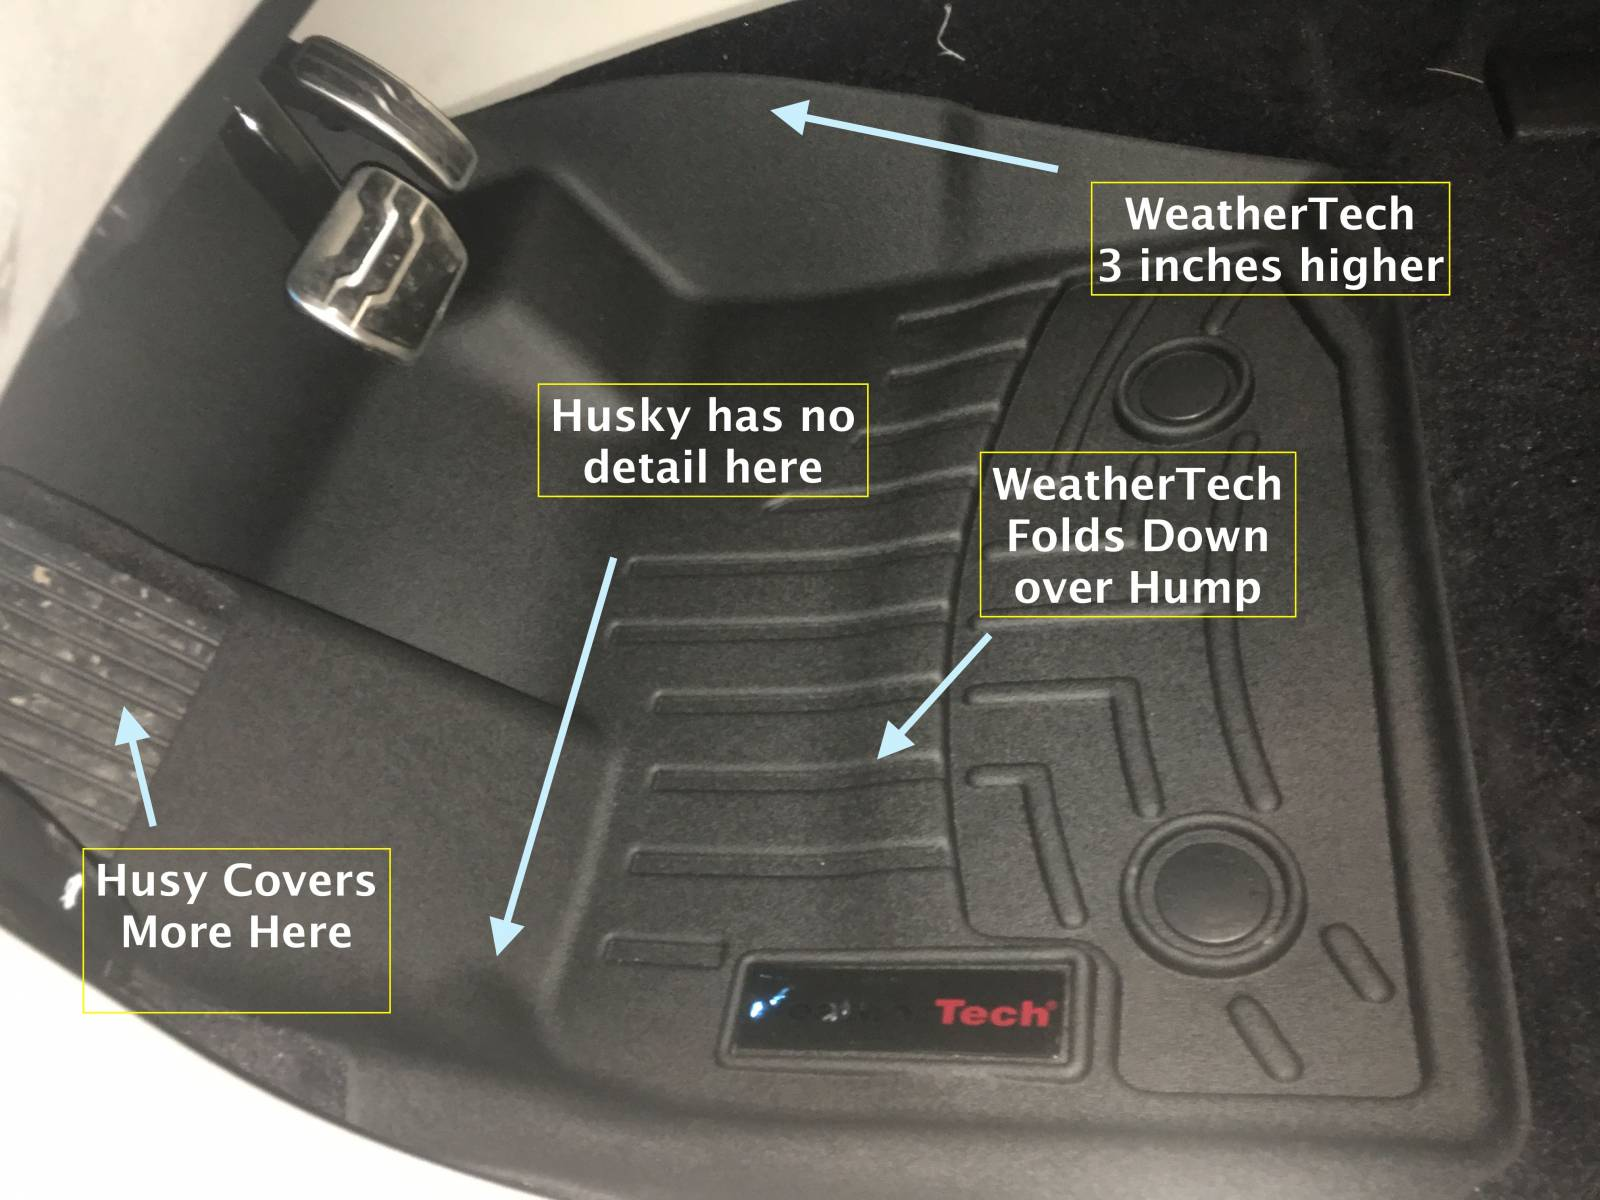 WeatherTech Annotated